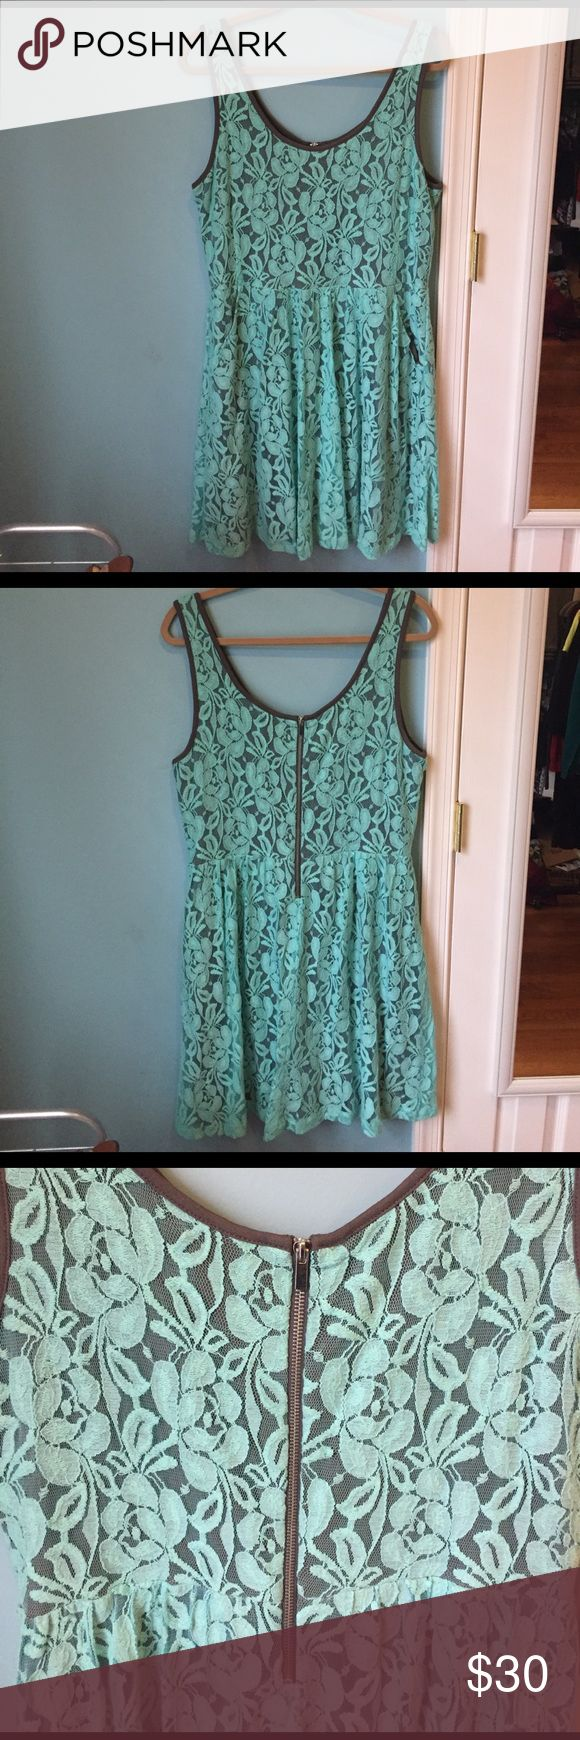 Nine West Turquoise Lace Dress (Size 14) Nine West Turquoise lace dress! Size 14 and true to size! Extremely cute on!Length (from top of strap to bottom): 39 inches. Only worn a handful of times and is extremely comfy! If you have any other questions, don't hesitate to ask 💞 Nine West Dresses Midi